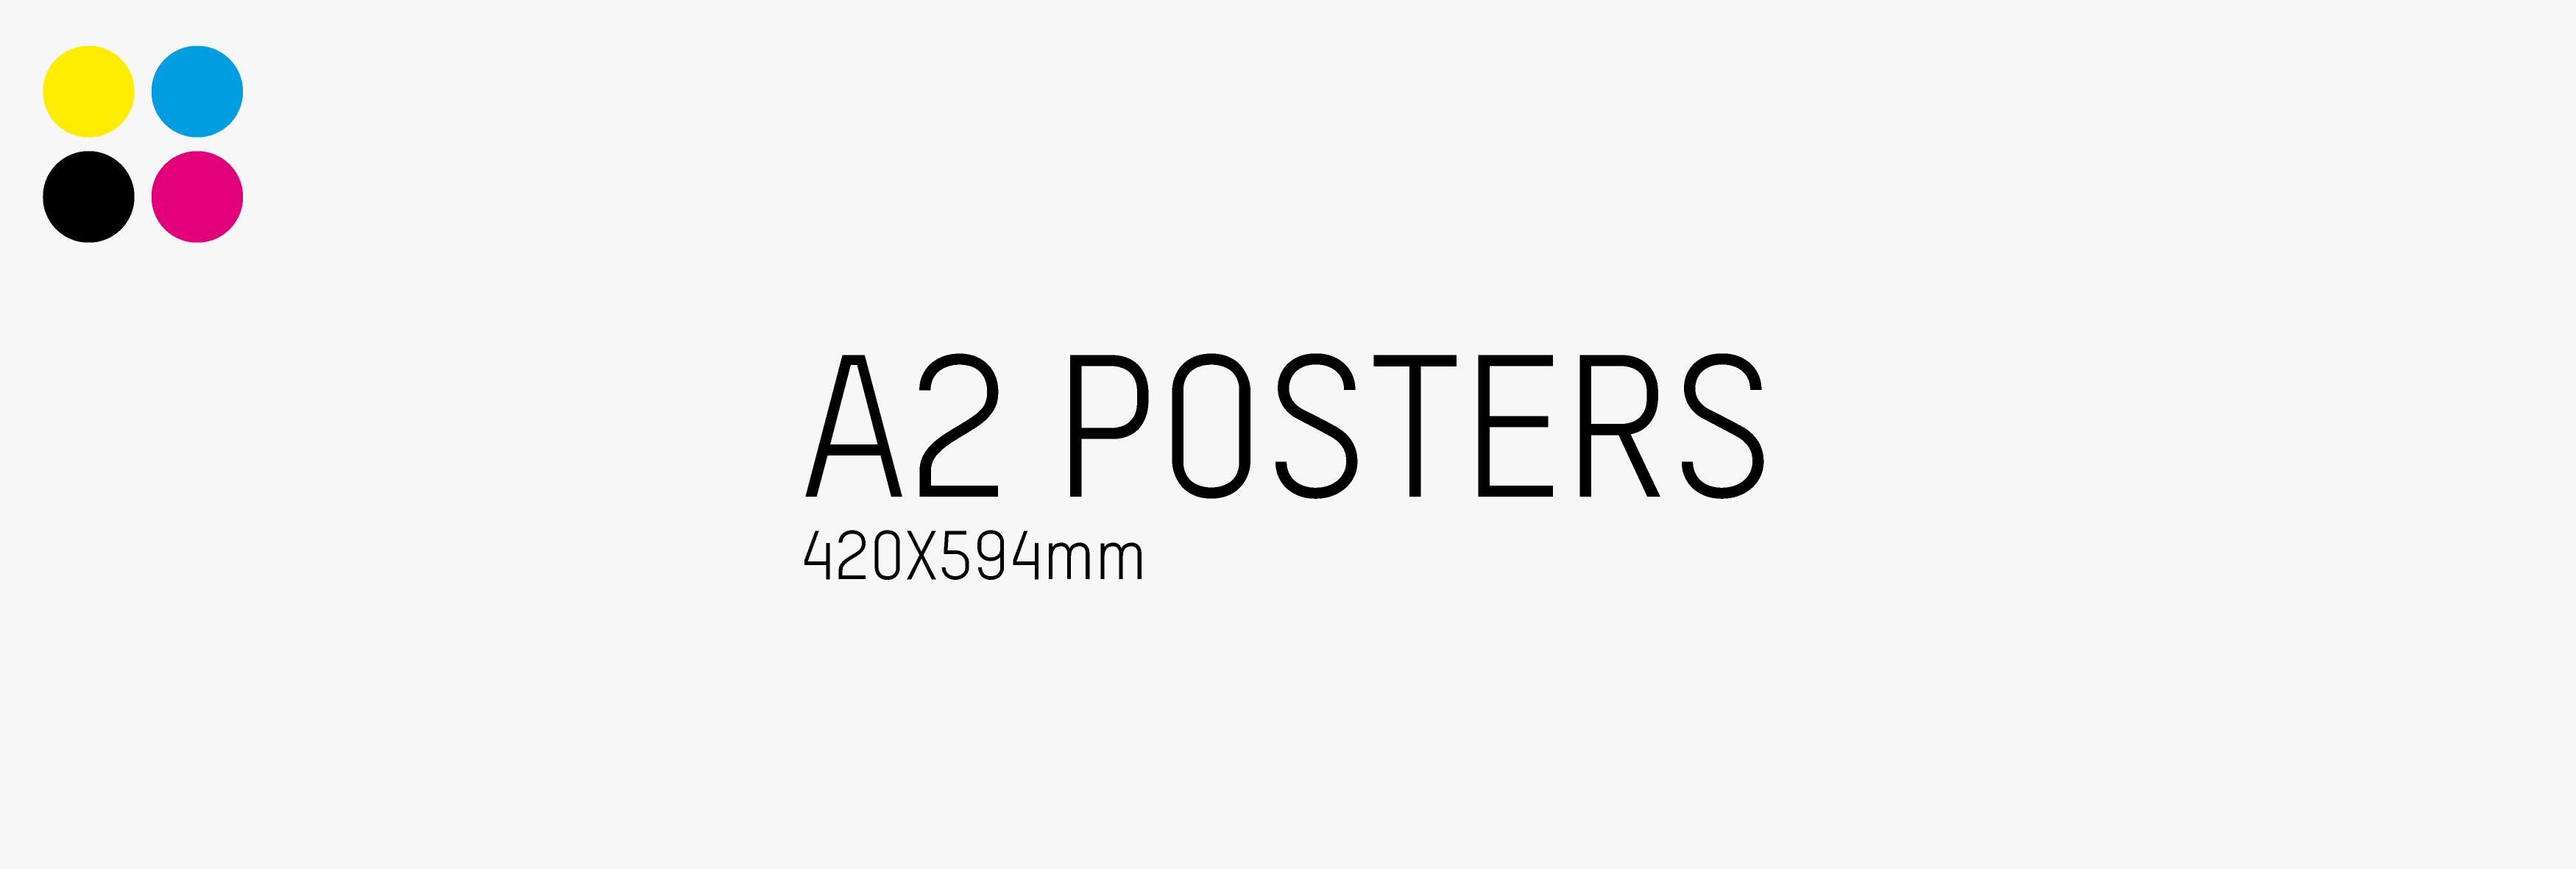 A2-posters